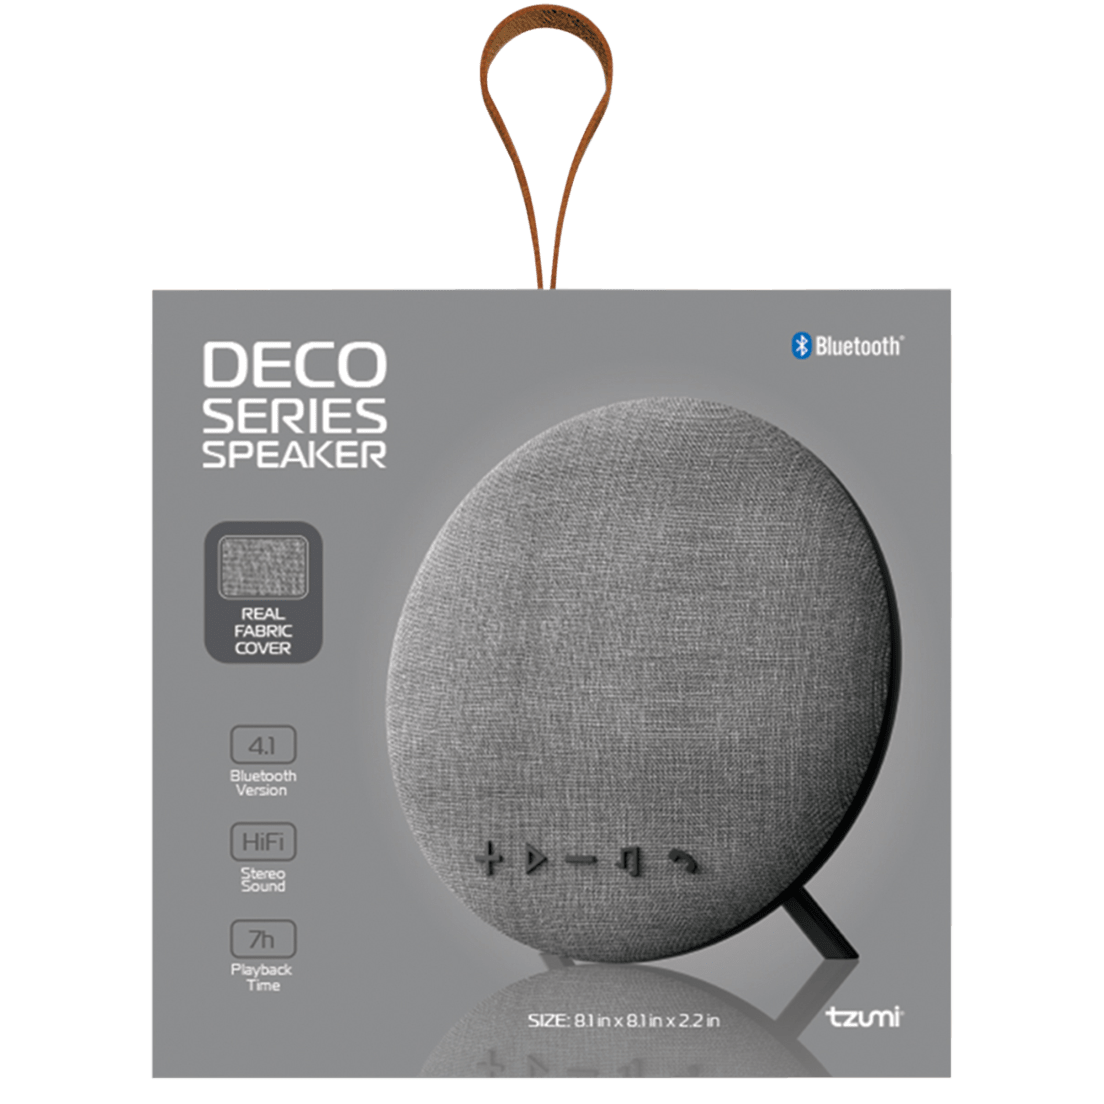 Sporting Deco Series Speaker By Tzumi Large Wireless Bluetooth Fabric Speaker Consumer Electronics Portable Audio & Headphones